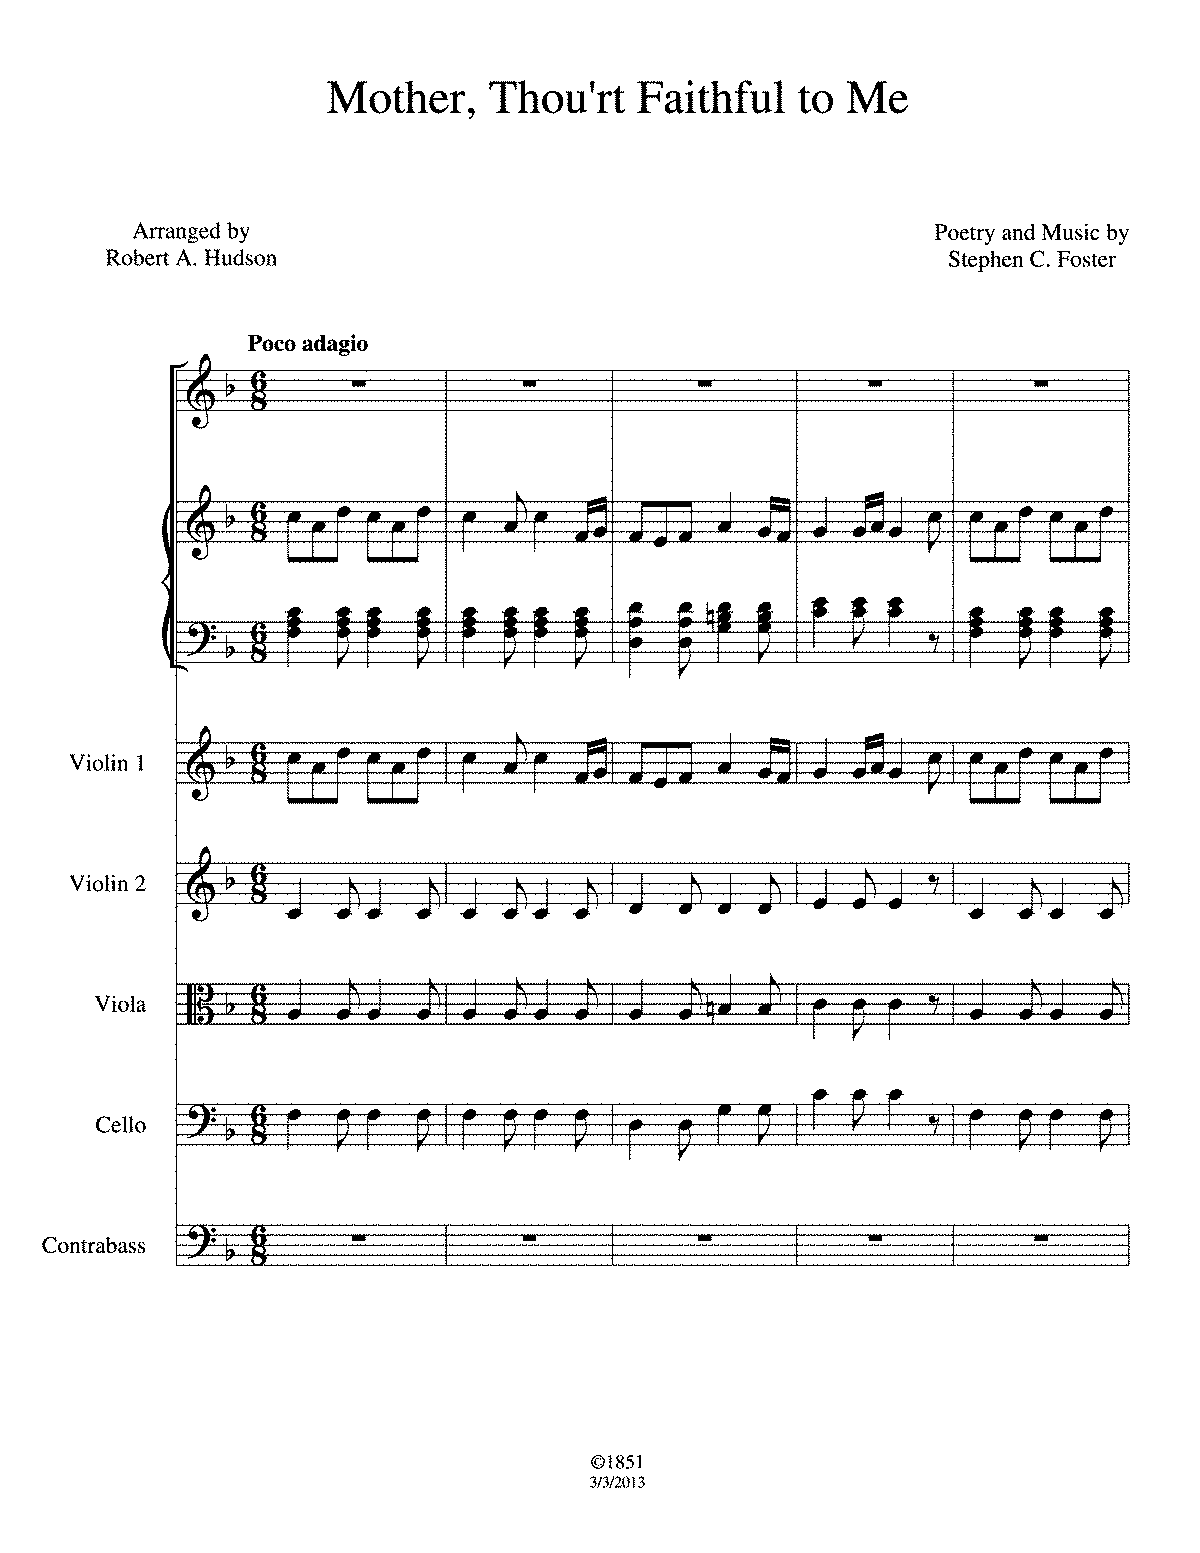 PMLP381130-Mother Thourt Faithful to Me Conductors Score.pdf